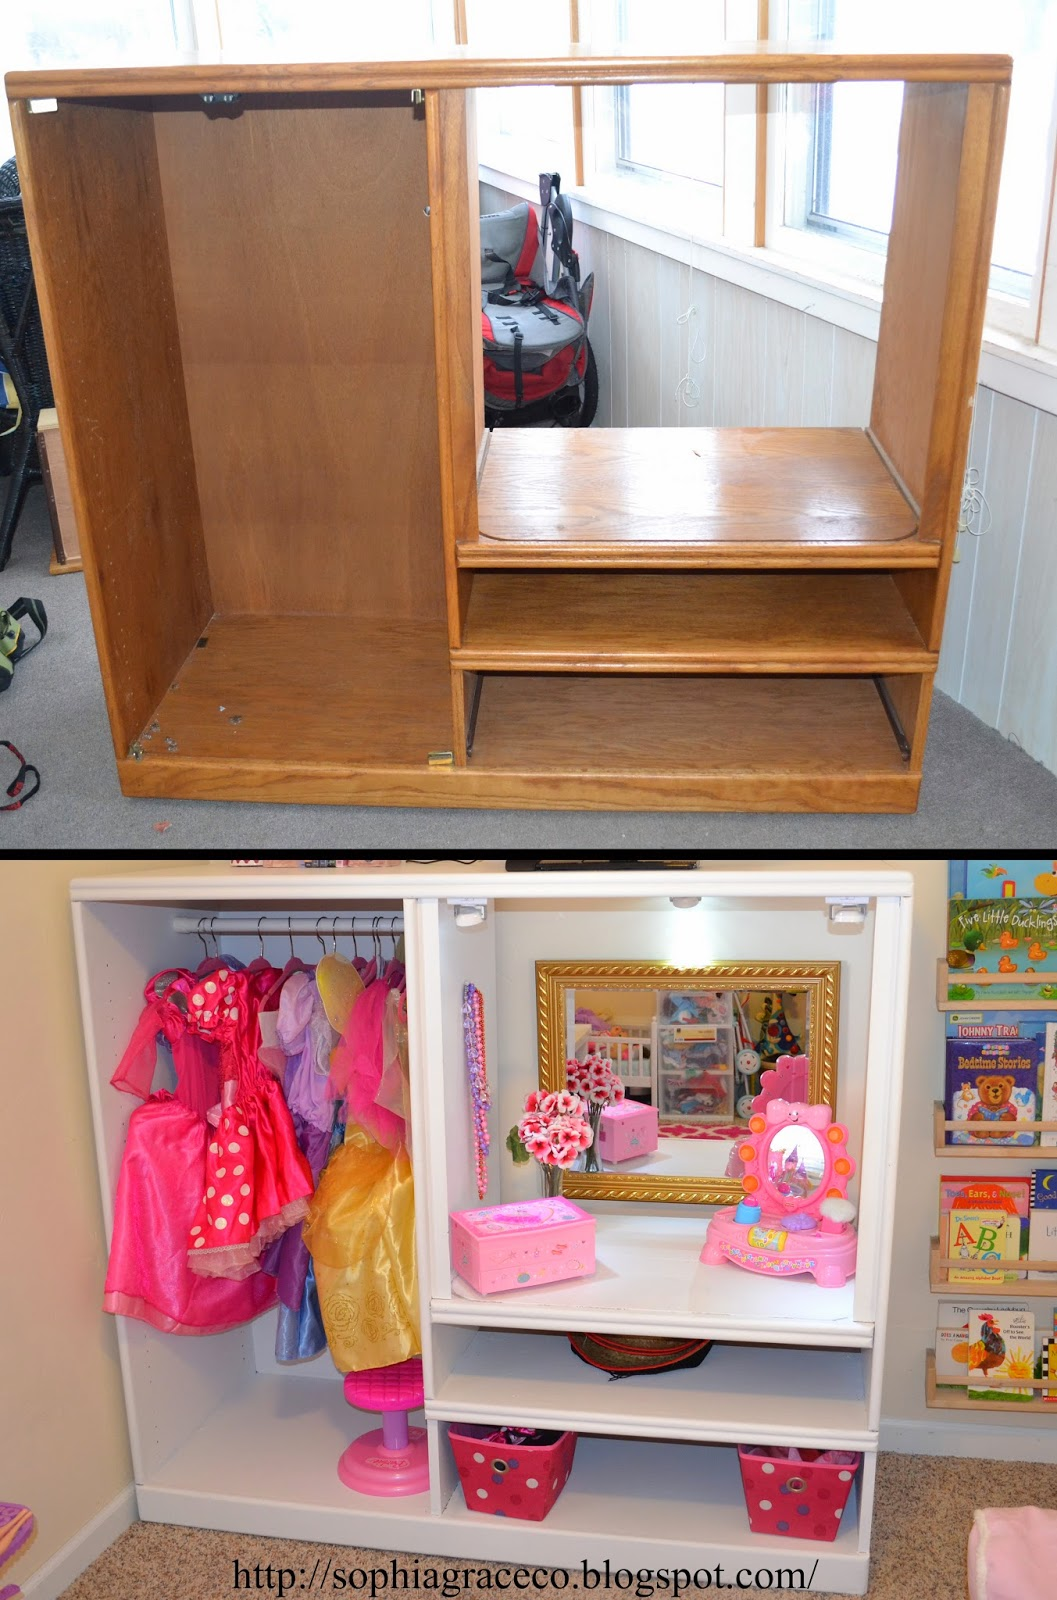 Dress Up Makeover | Repurpose Furniture: The Best Way To Upgrade Your Home Living Economically